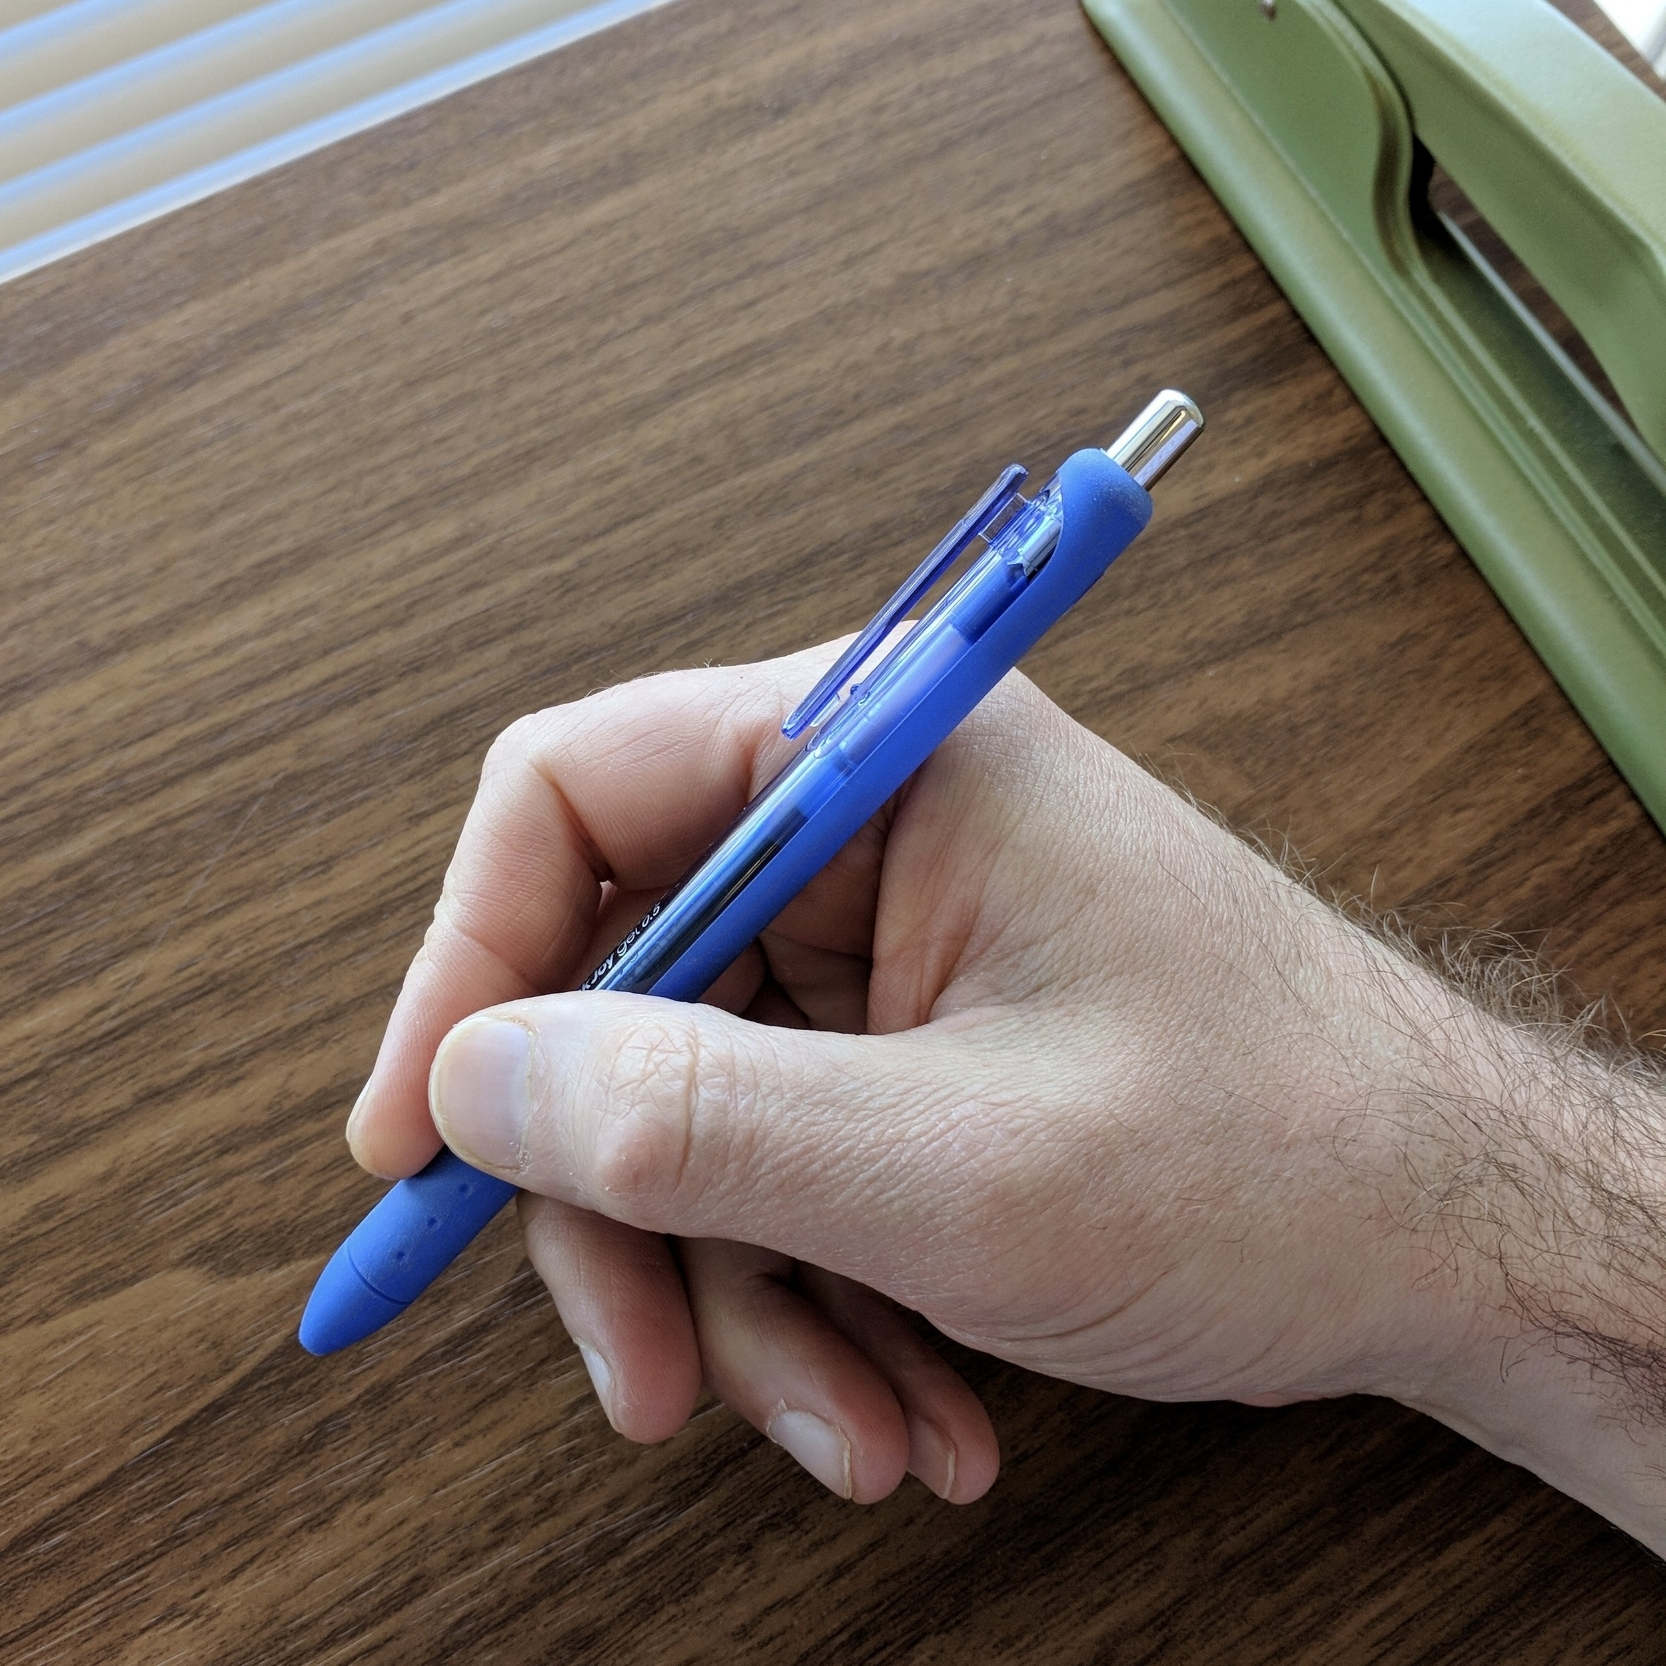 The Inkjoy has good length and is nicely balanced. It's a comfortable pen to use for longer writing/notetaking sessions, and there's a lot of grip area.